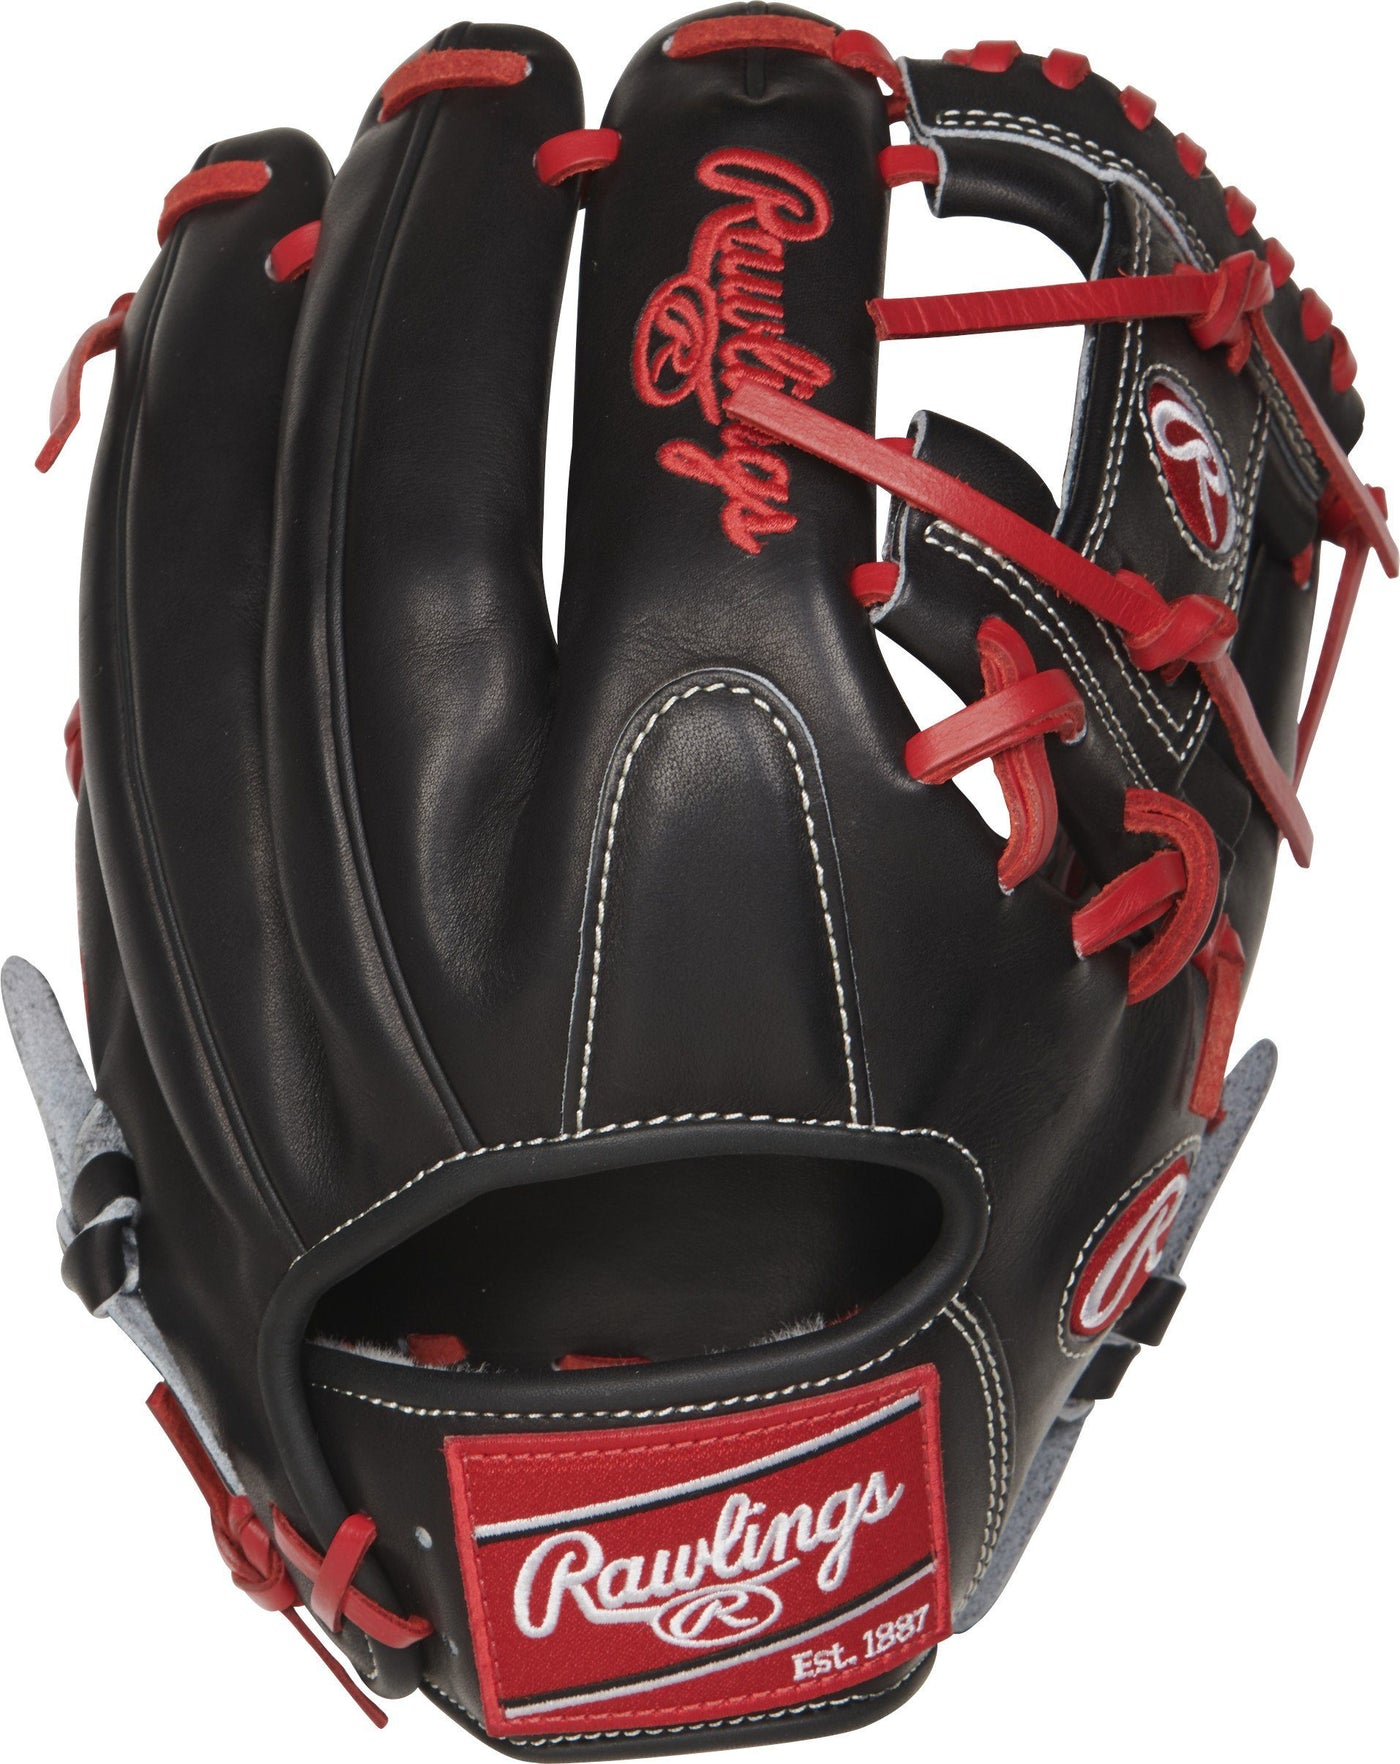 870cf4c1e101 2018 Rawlings Pro Preferred 11.75